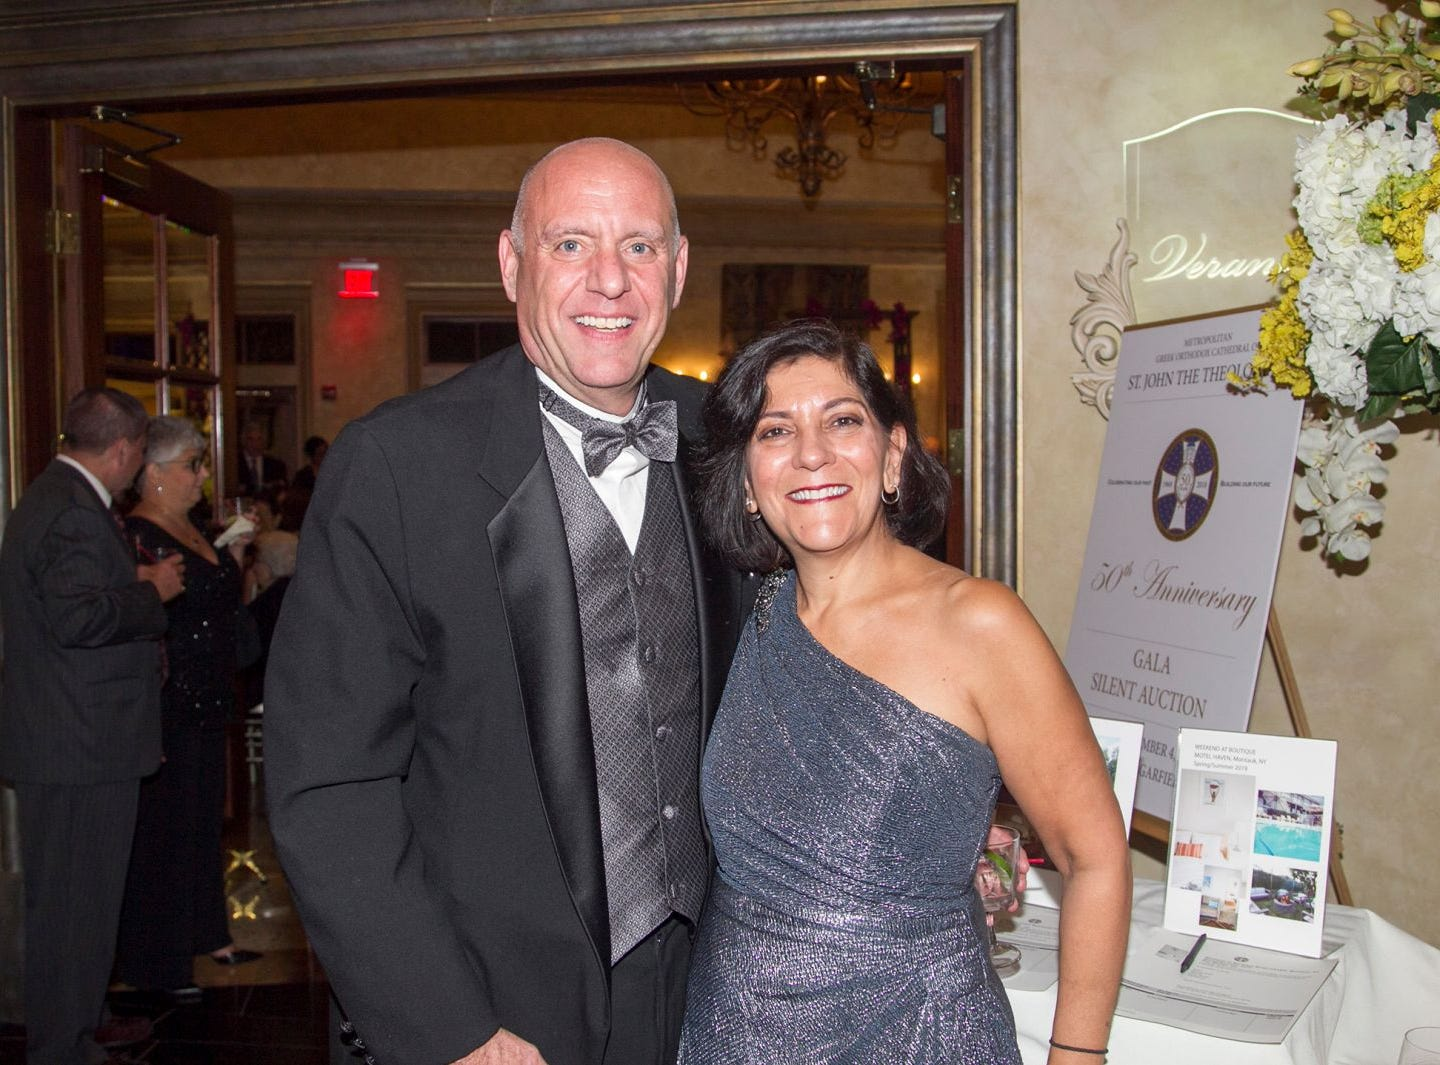 Peter and Joanne Lallos. Saint John the Theologian 50th Anniversary gala Dinner at The Venetian in Garfield. 10/04/2018